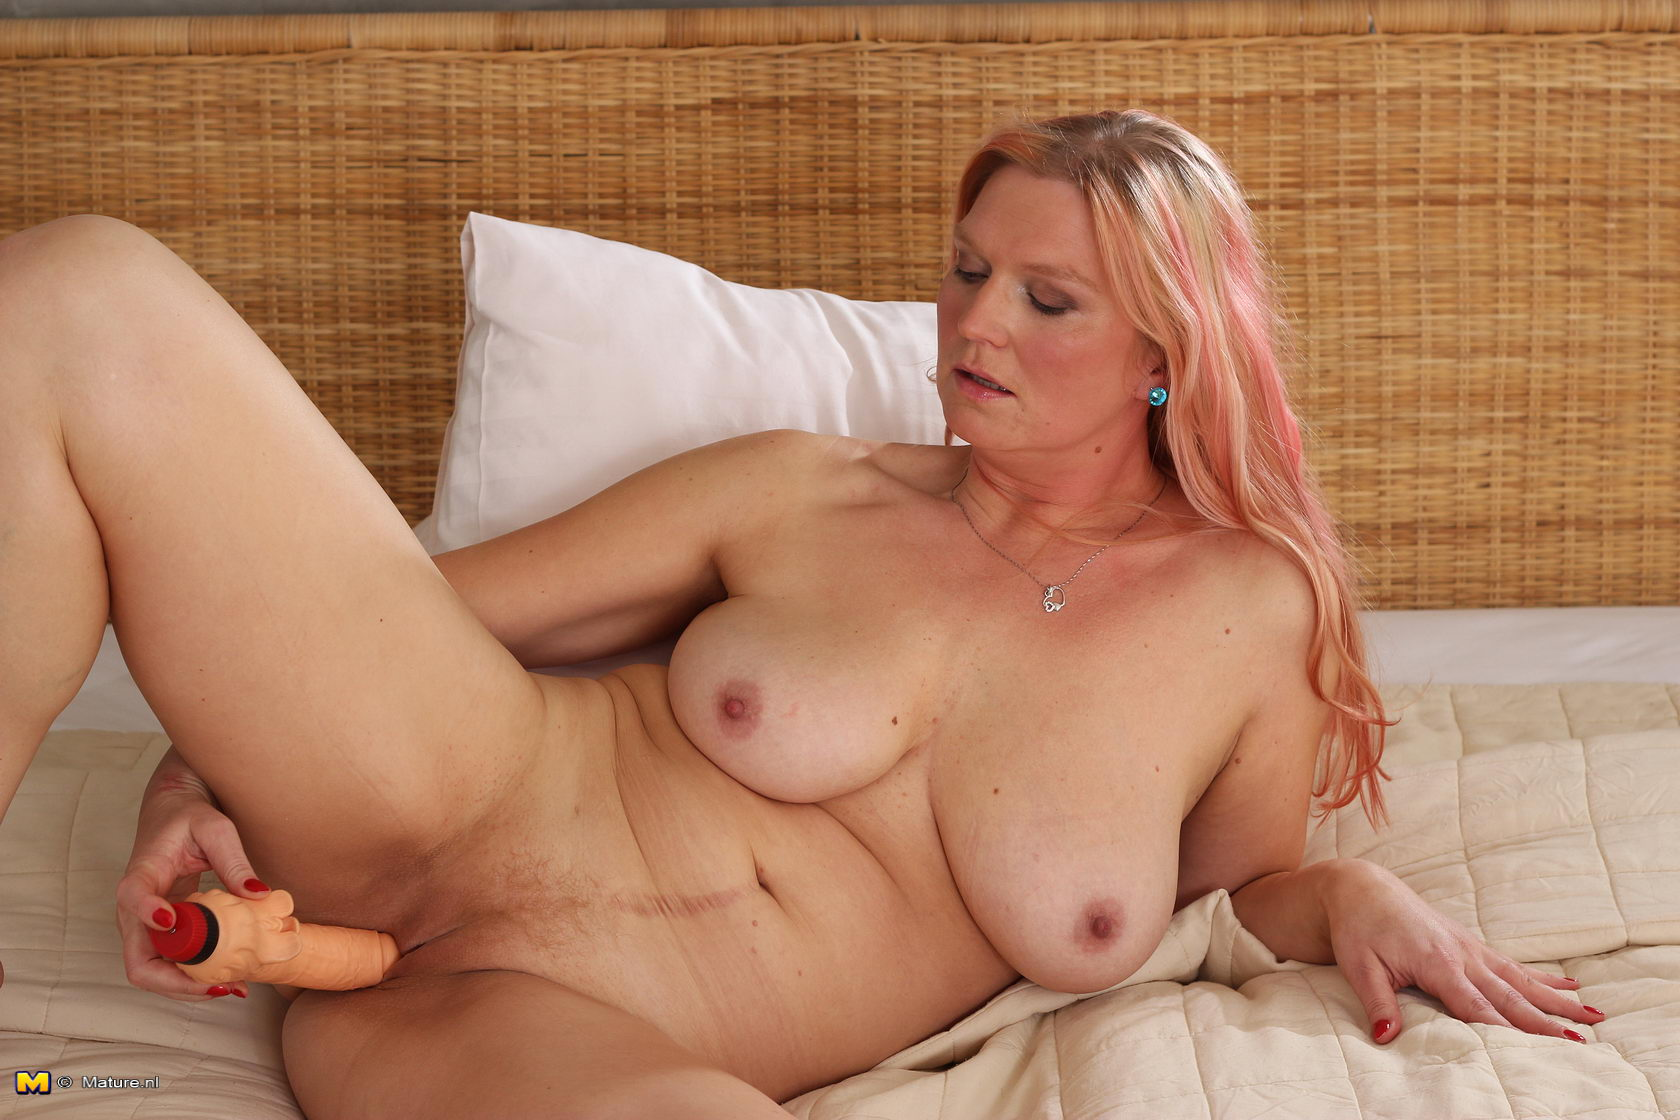 Alex real housewives nude